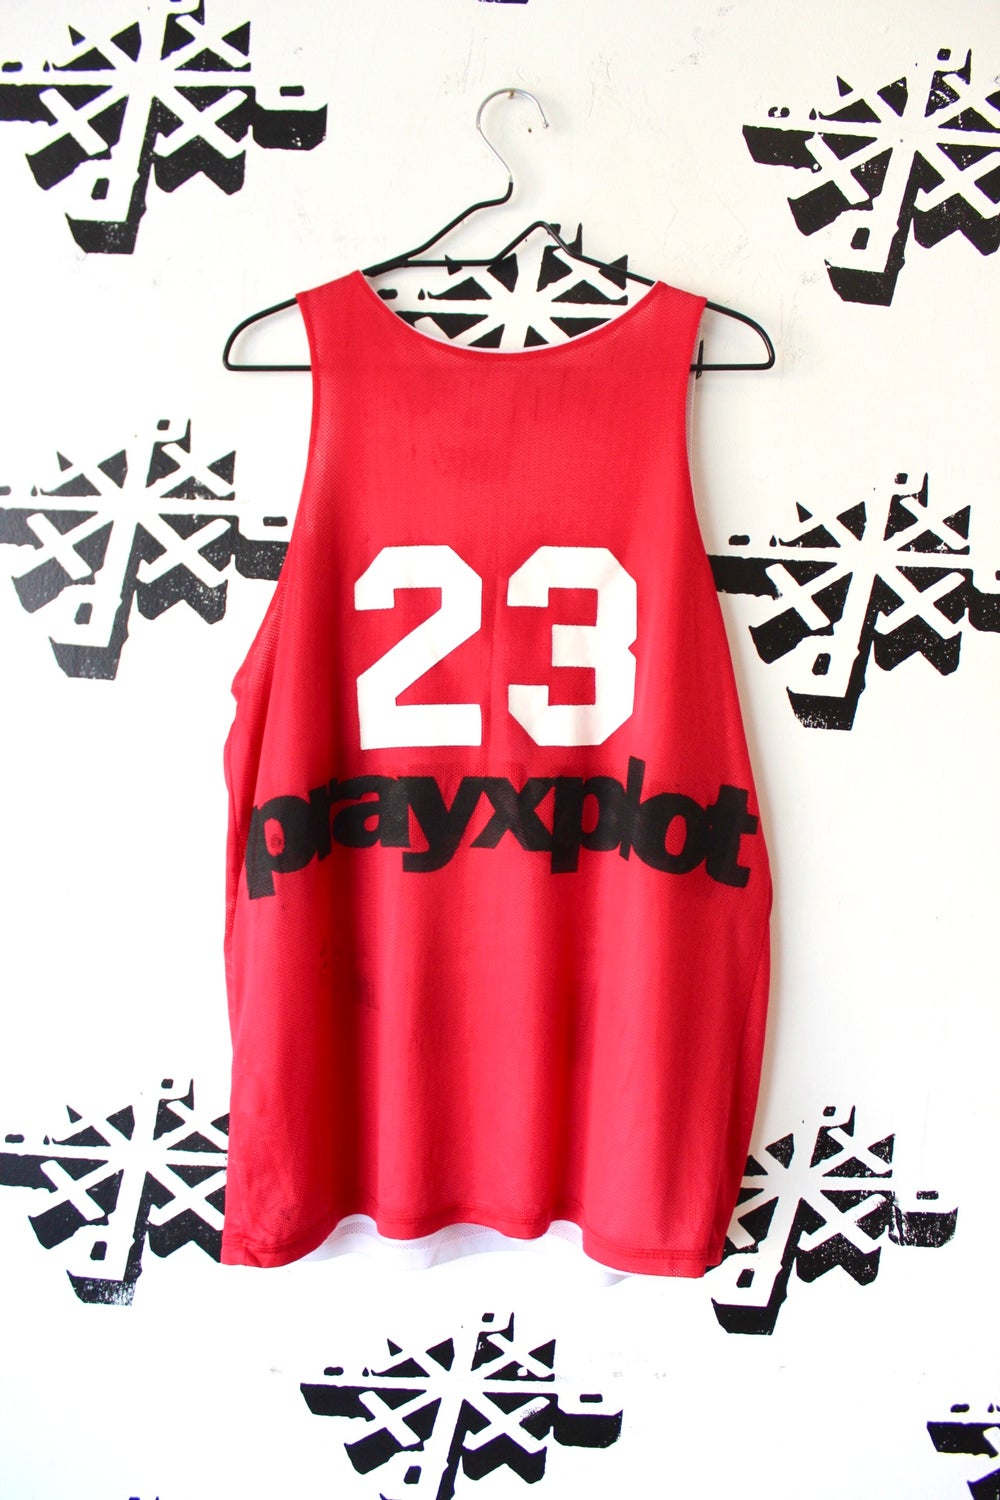 trained shooter jersey in red and white